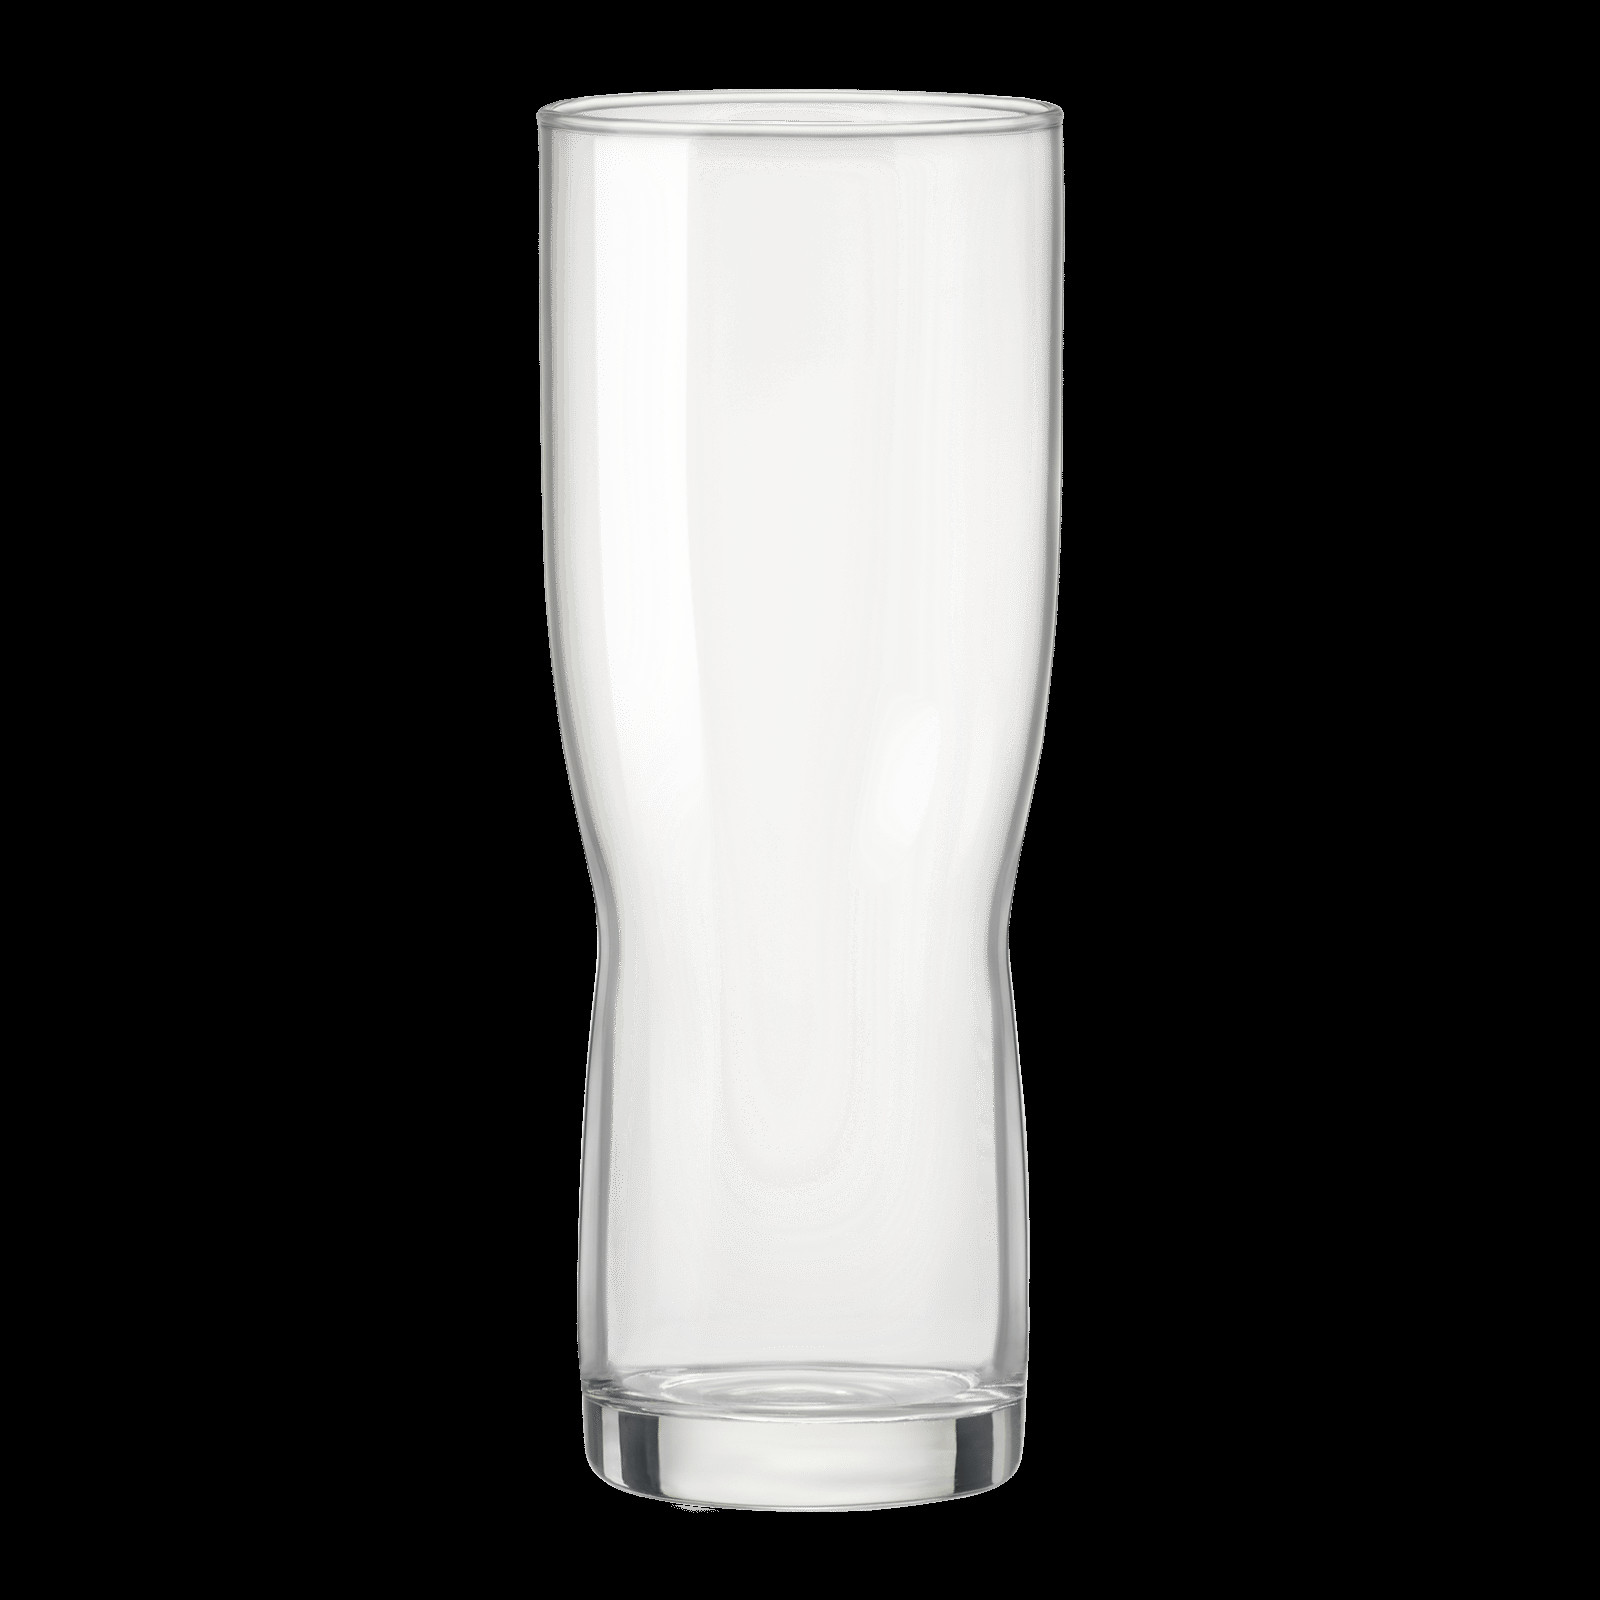 8 inch glass cube vase of archivi products bormioli rocco regarding beer glass 13 1 2 oz new pilsner